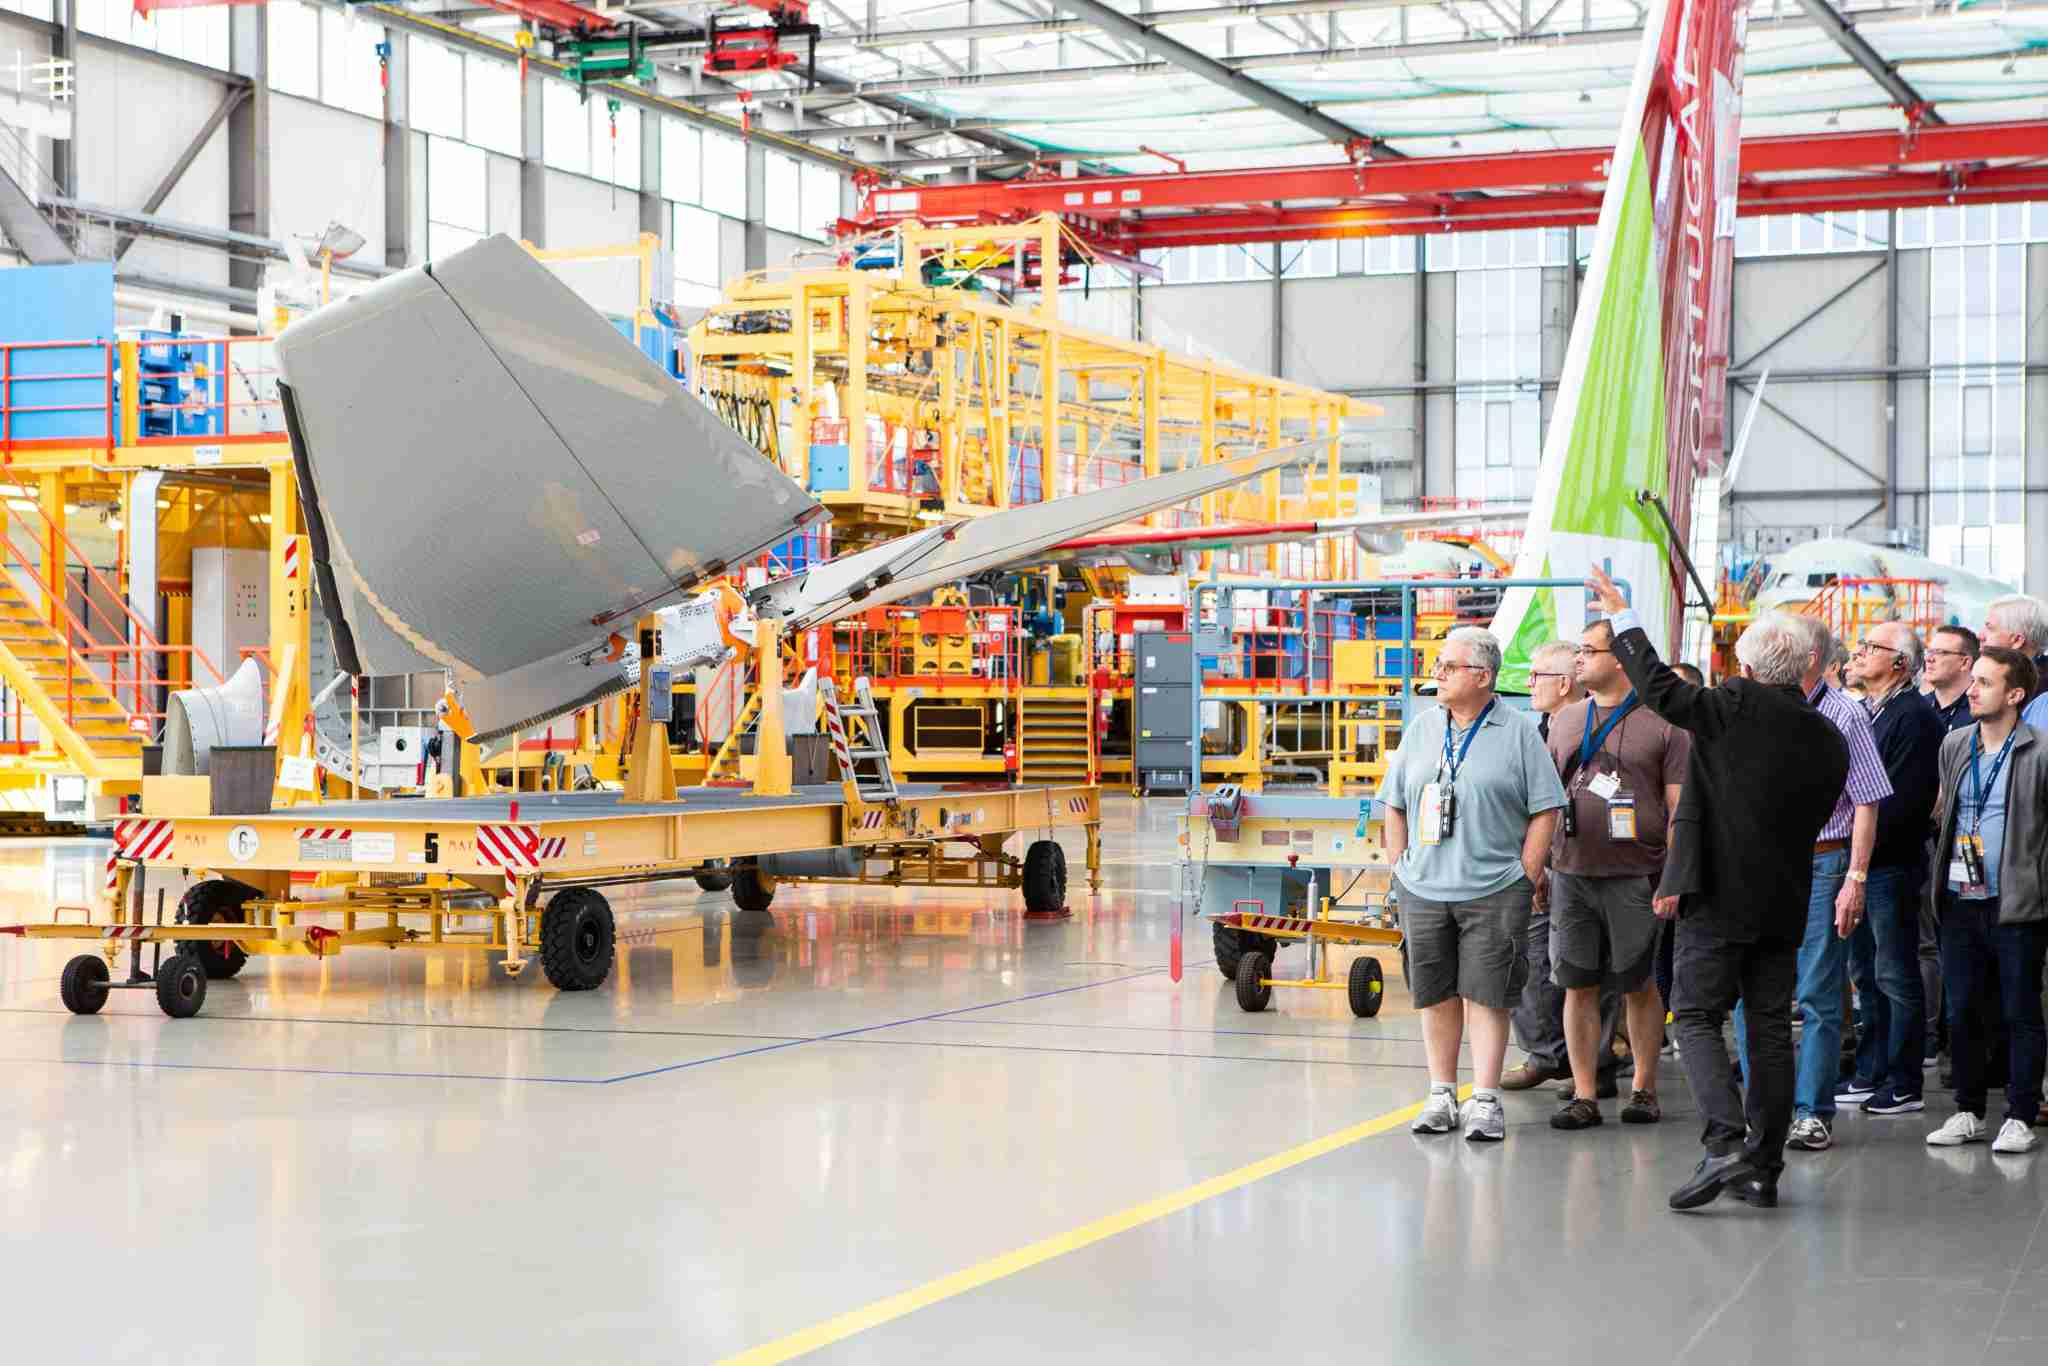 Tour of the Airbus A321 assembly line - Image courtesy of MegaDo / Airbus